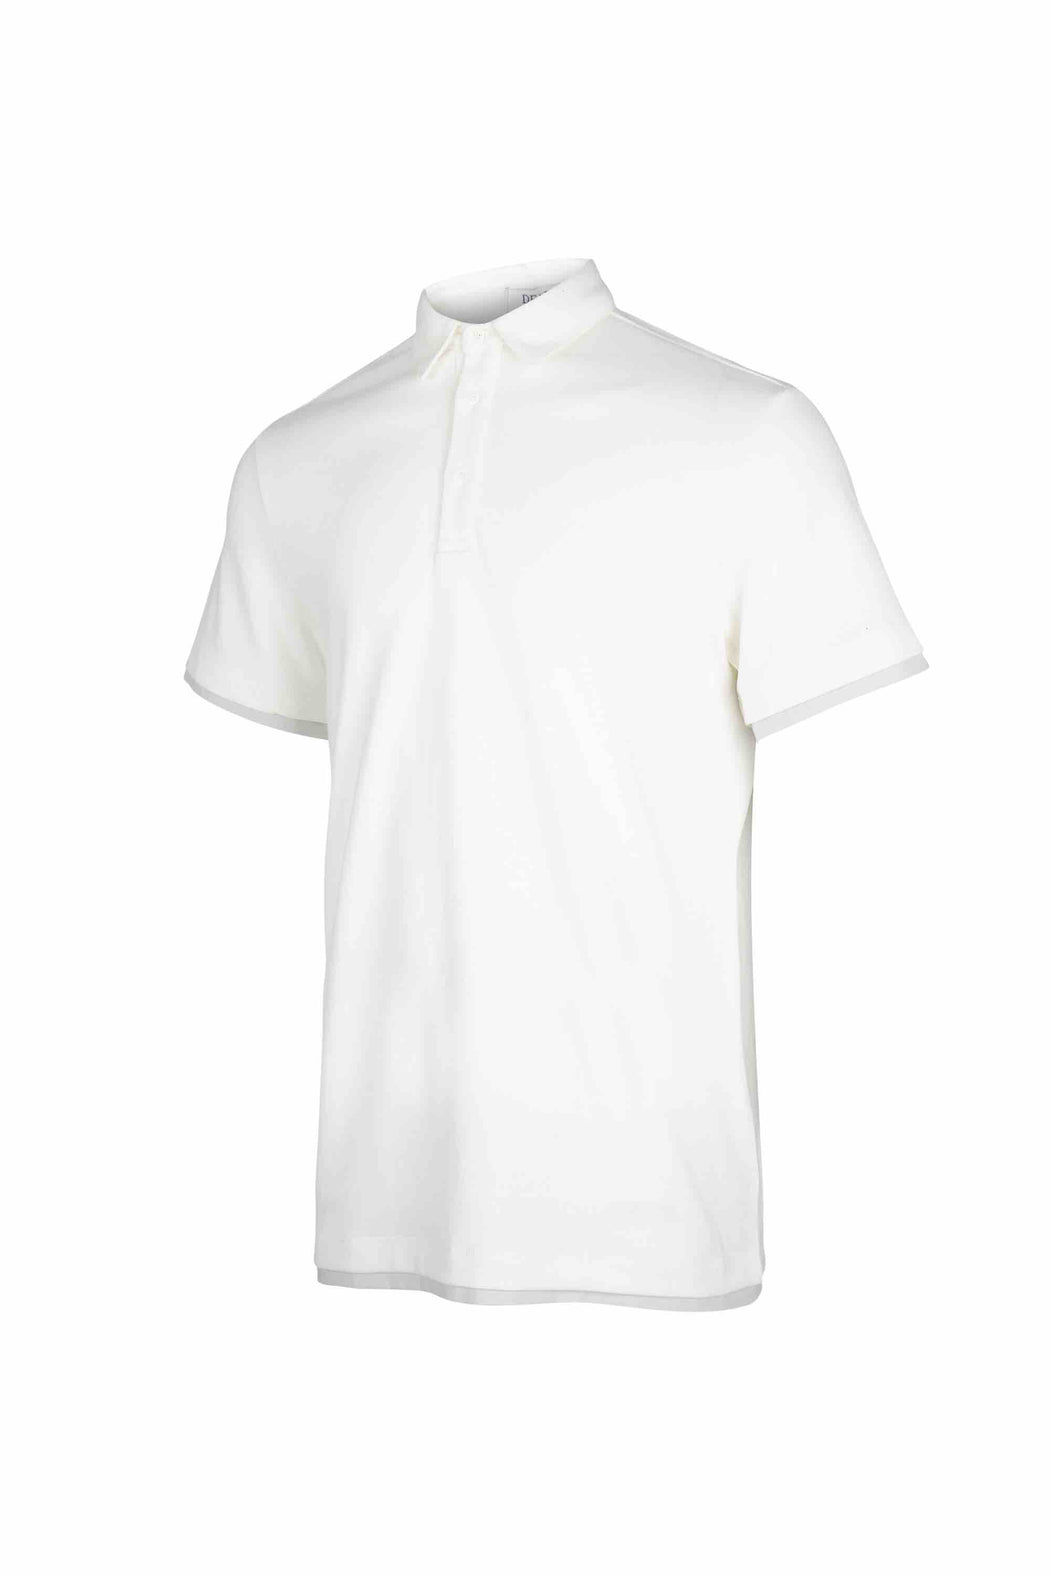 Side view of Men Contrast Polo Shirt, made with Organic Cotton in White